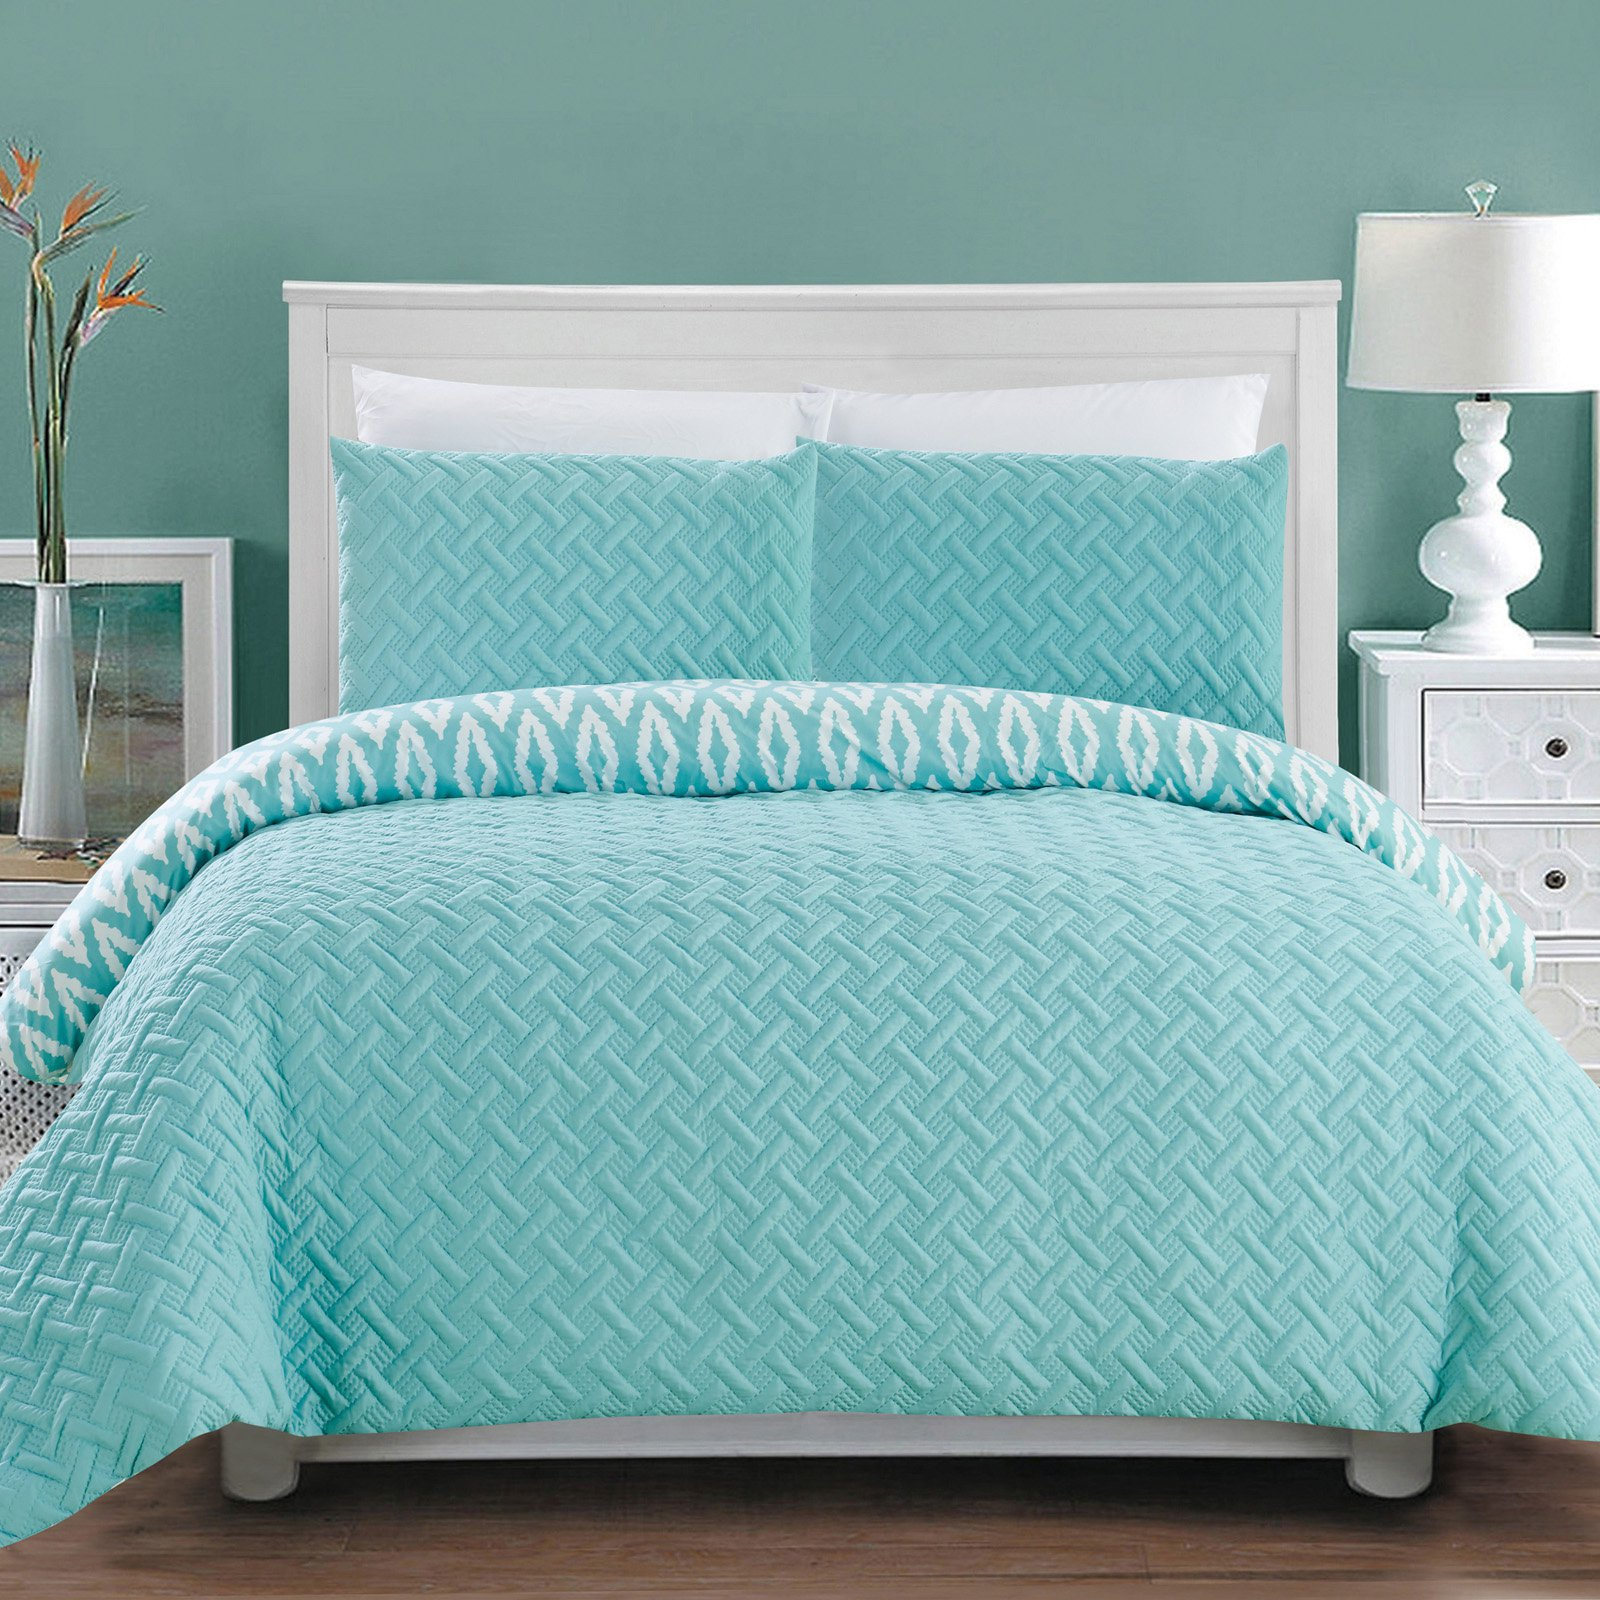 3 Piece Sabina Comforter Set by Chic Home